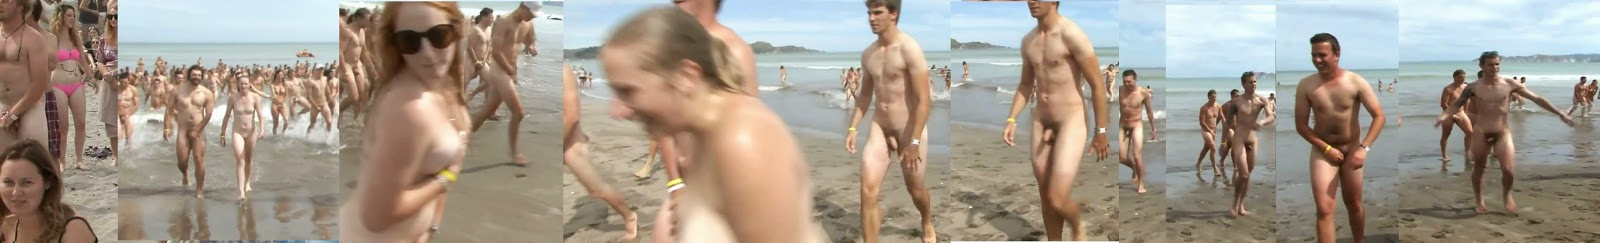 nudists twinks